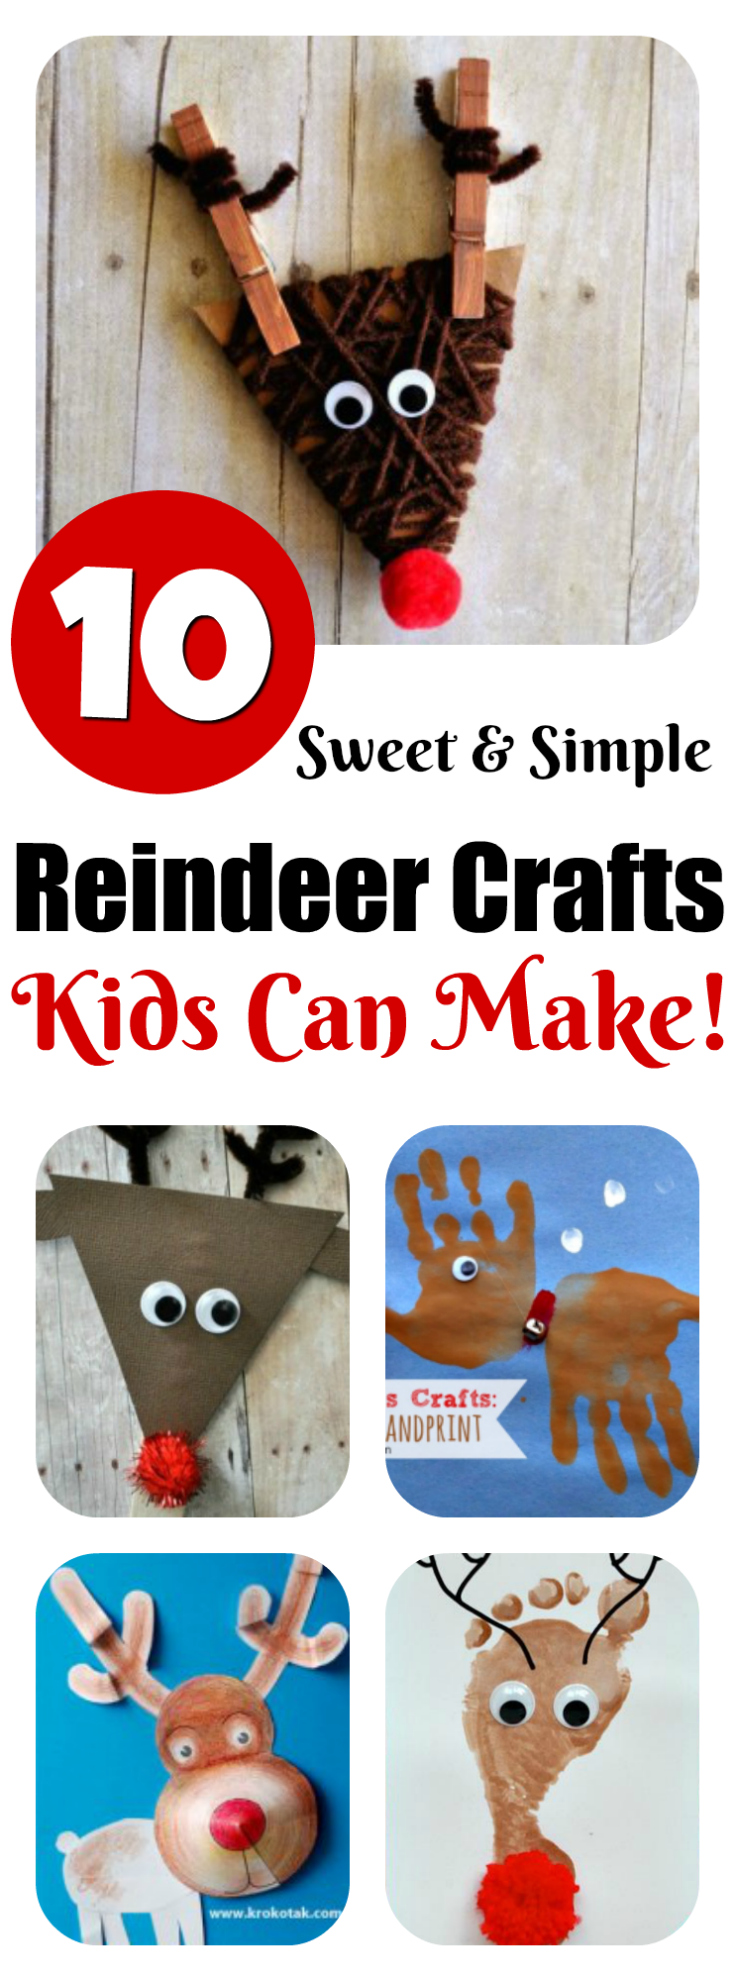 christmas crafts for kids to make reindeer crafts can make 10 ideas letters 7510